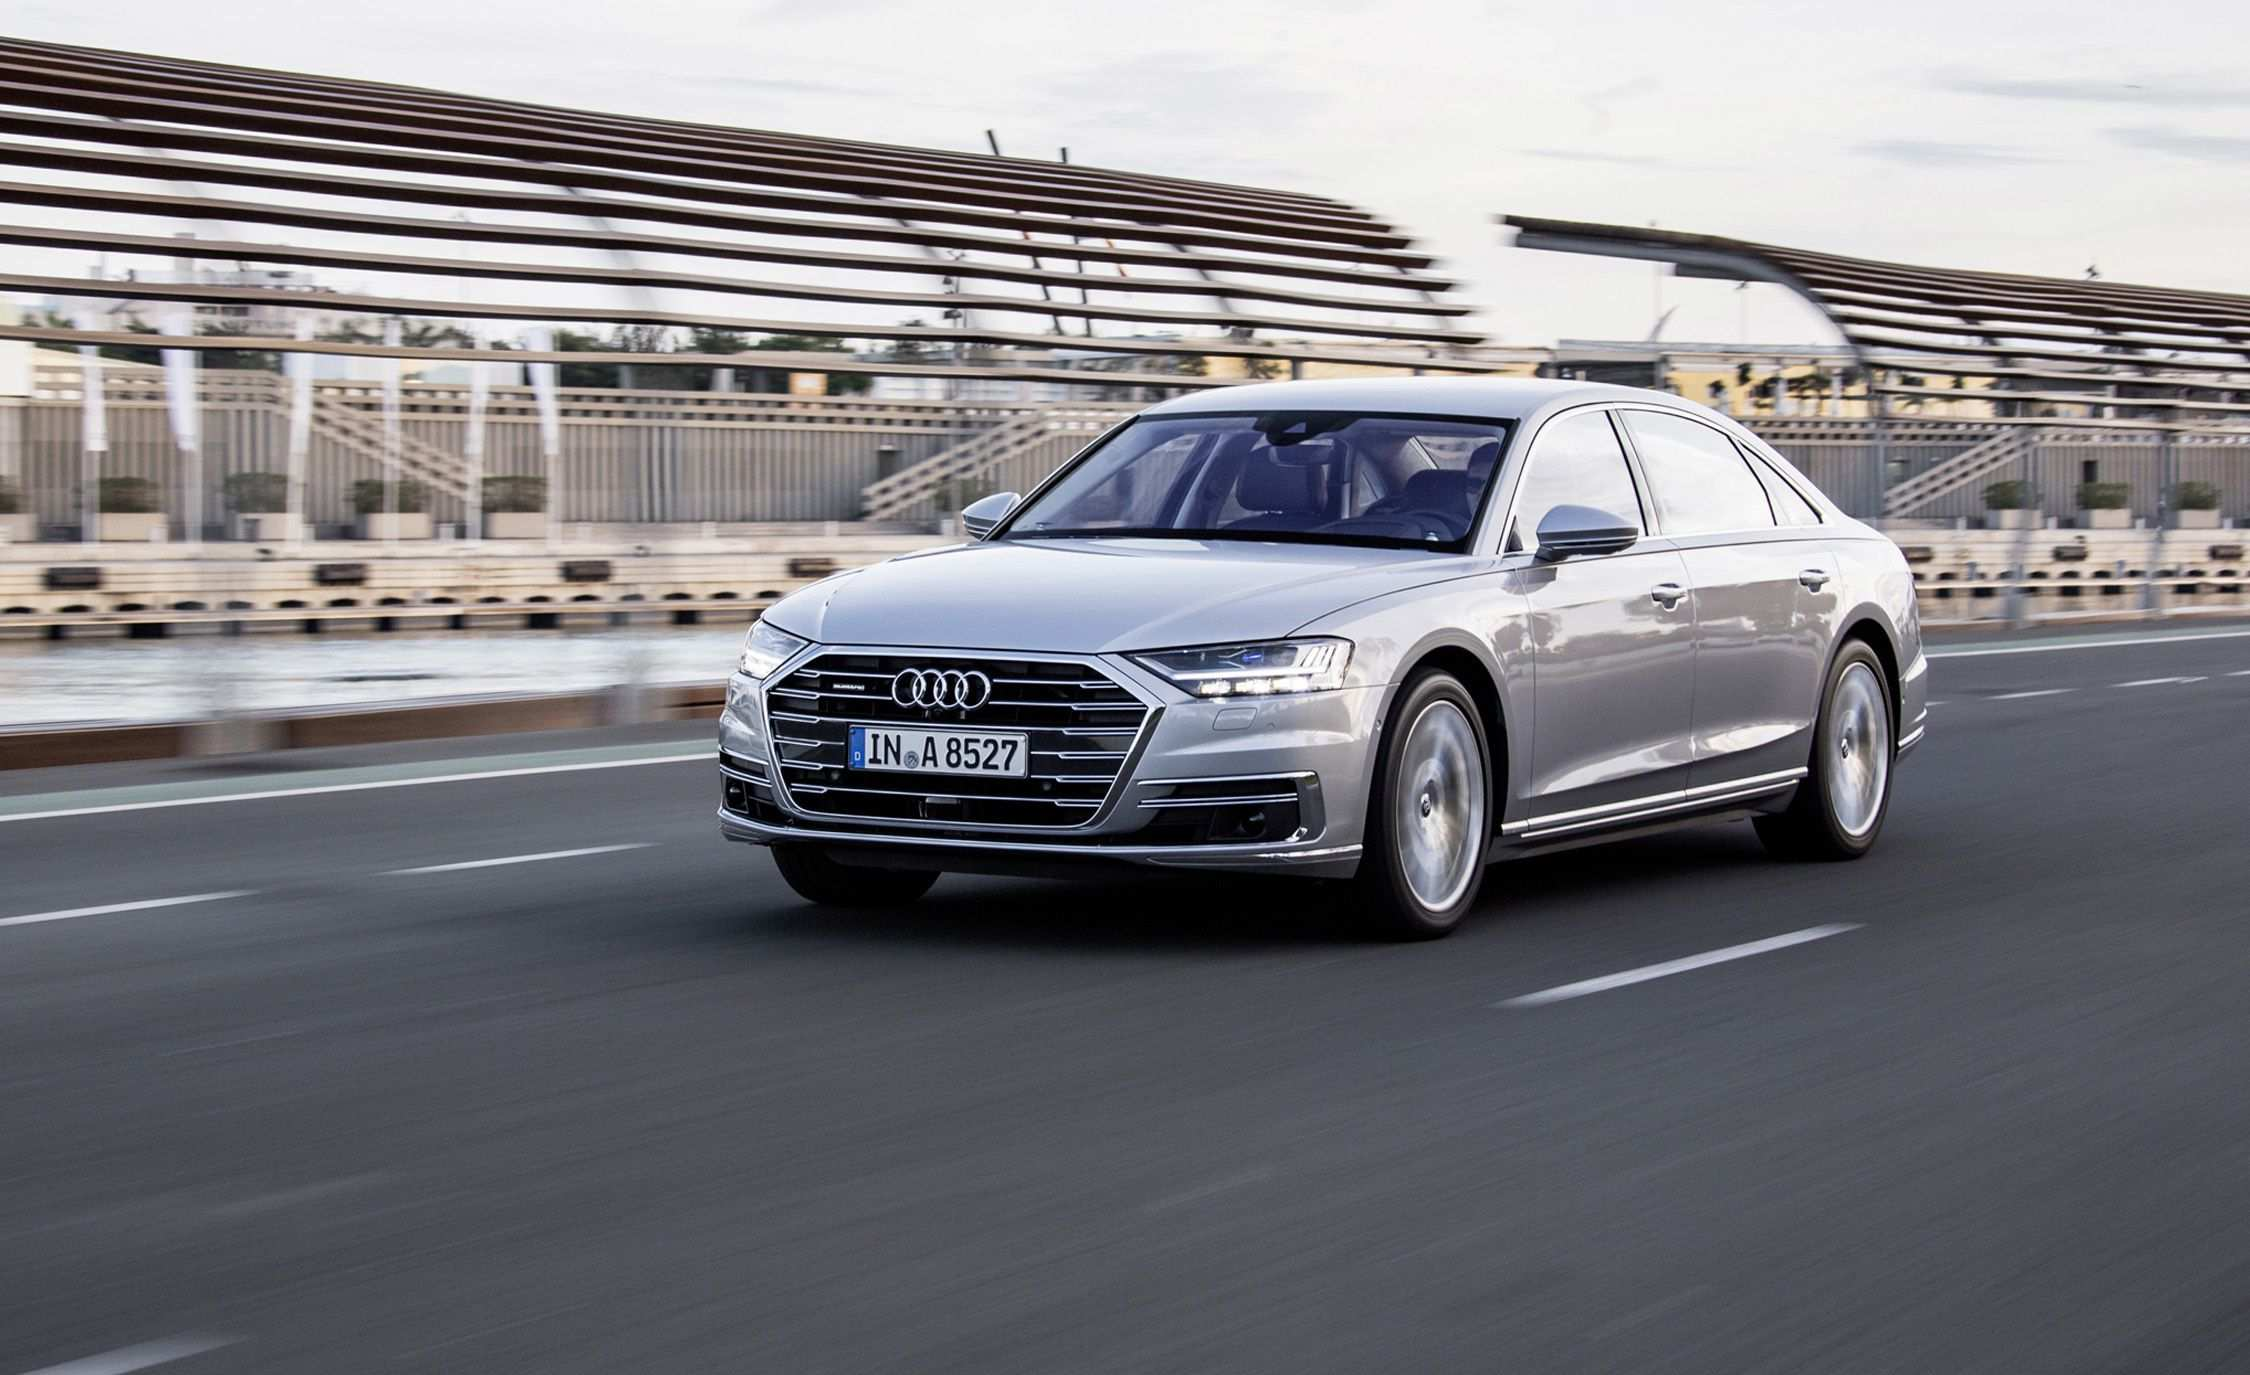 70 Best Review Audi A8 2019 Ratings for Audi A8 2019